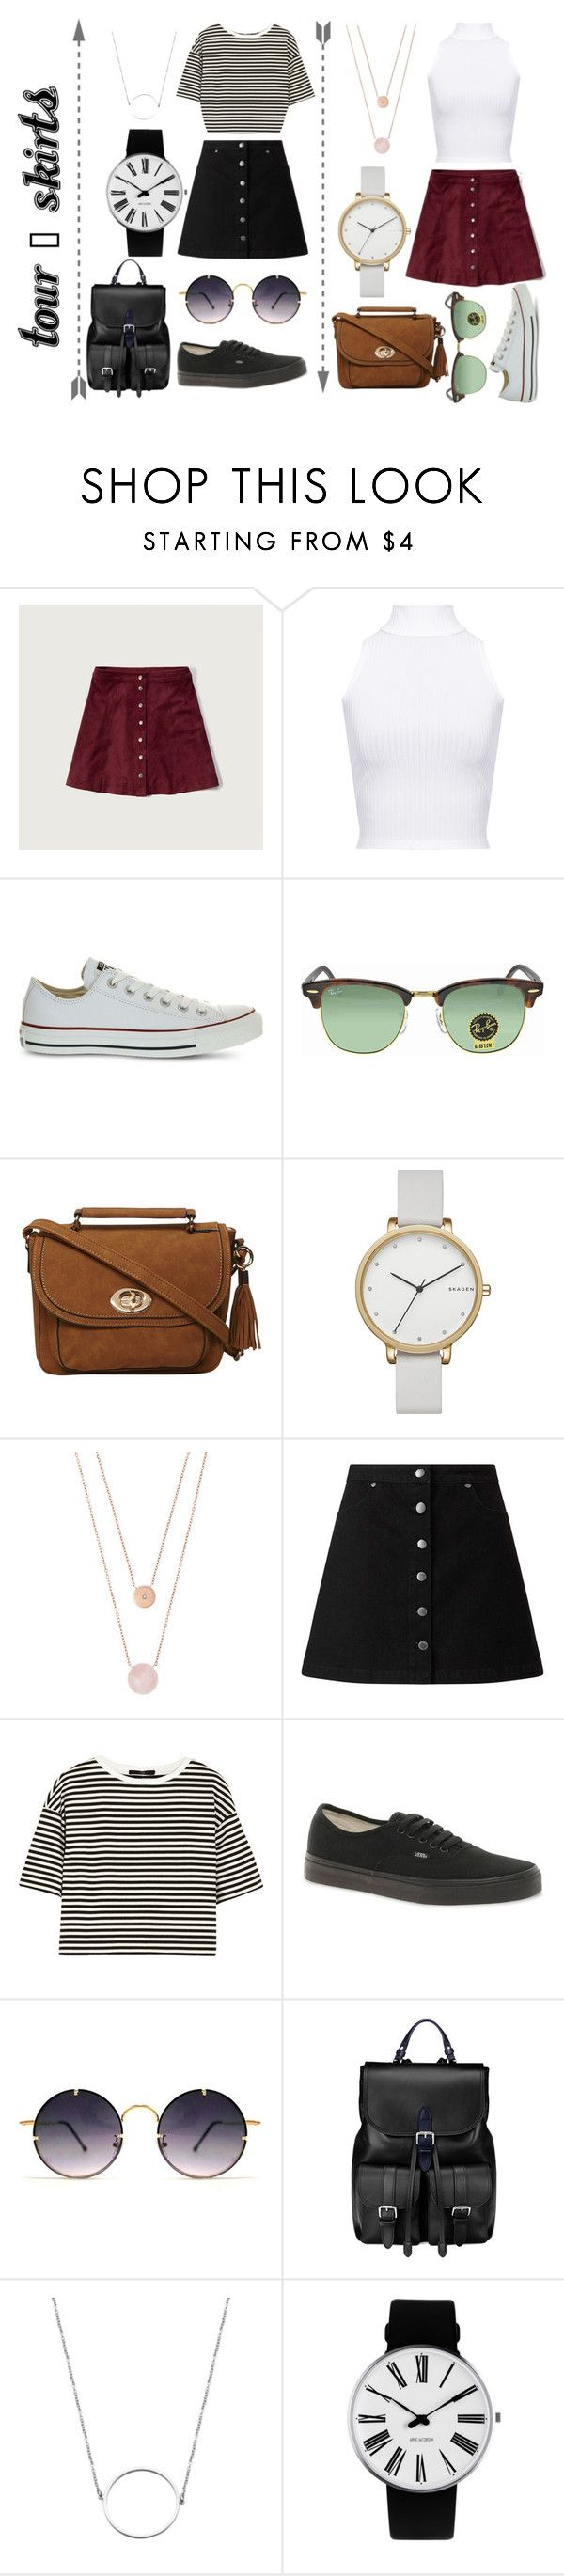 """""""TOUR - Skirts"""" by lilyrose2000 on Polyvore featuring Abercrombie & Fitch, WearAll, Converse, Ray-Ban, Dorothy Perkins, Skagen, Michael Kors, Miss Selfridge, TIBI and Vans"""